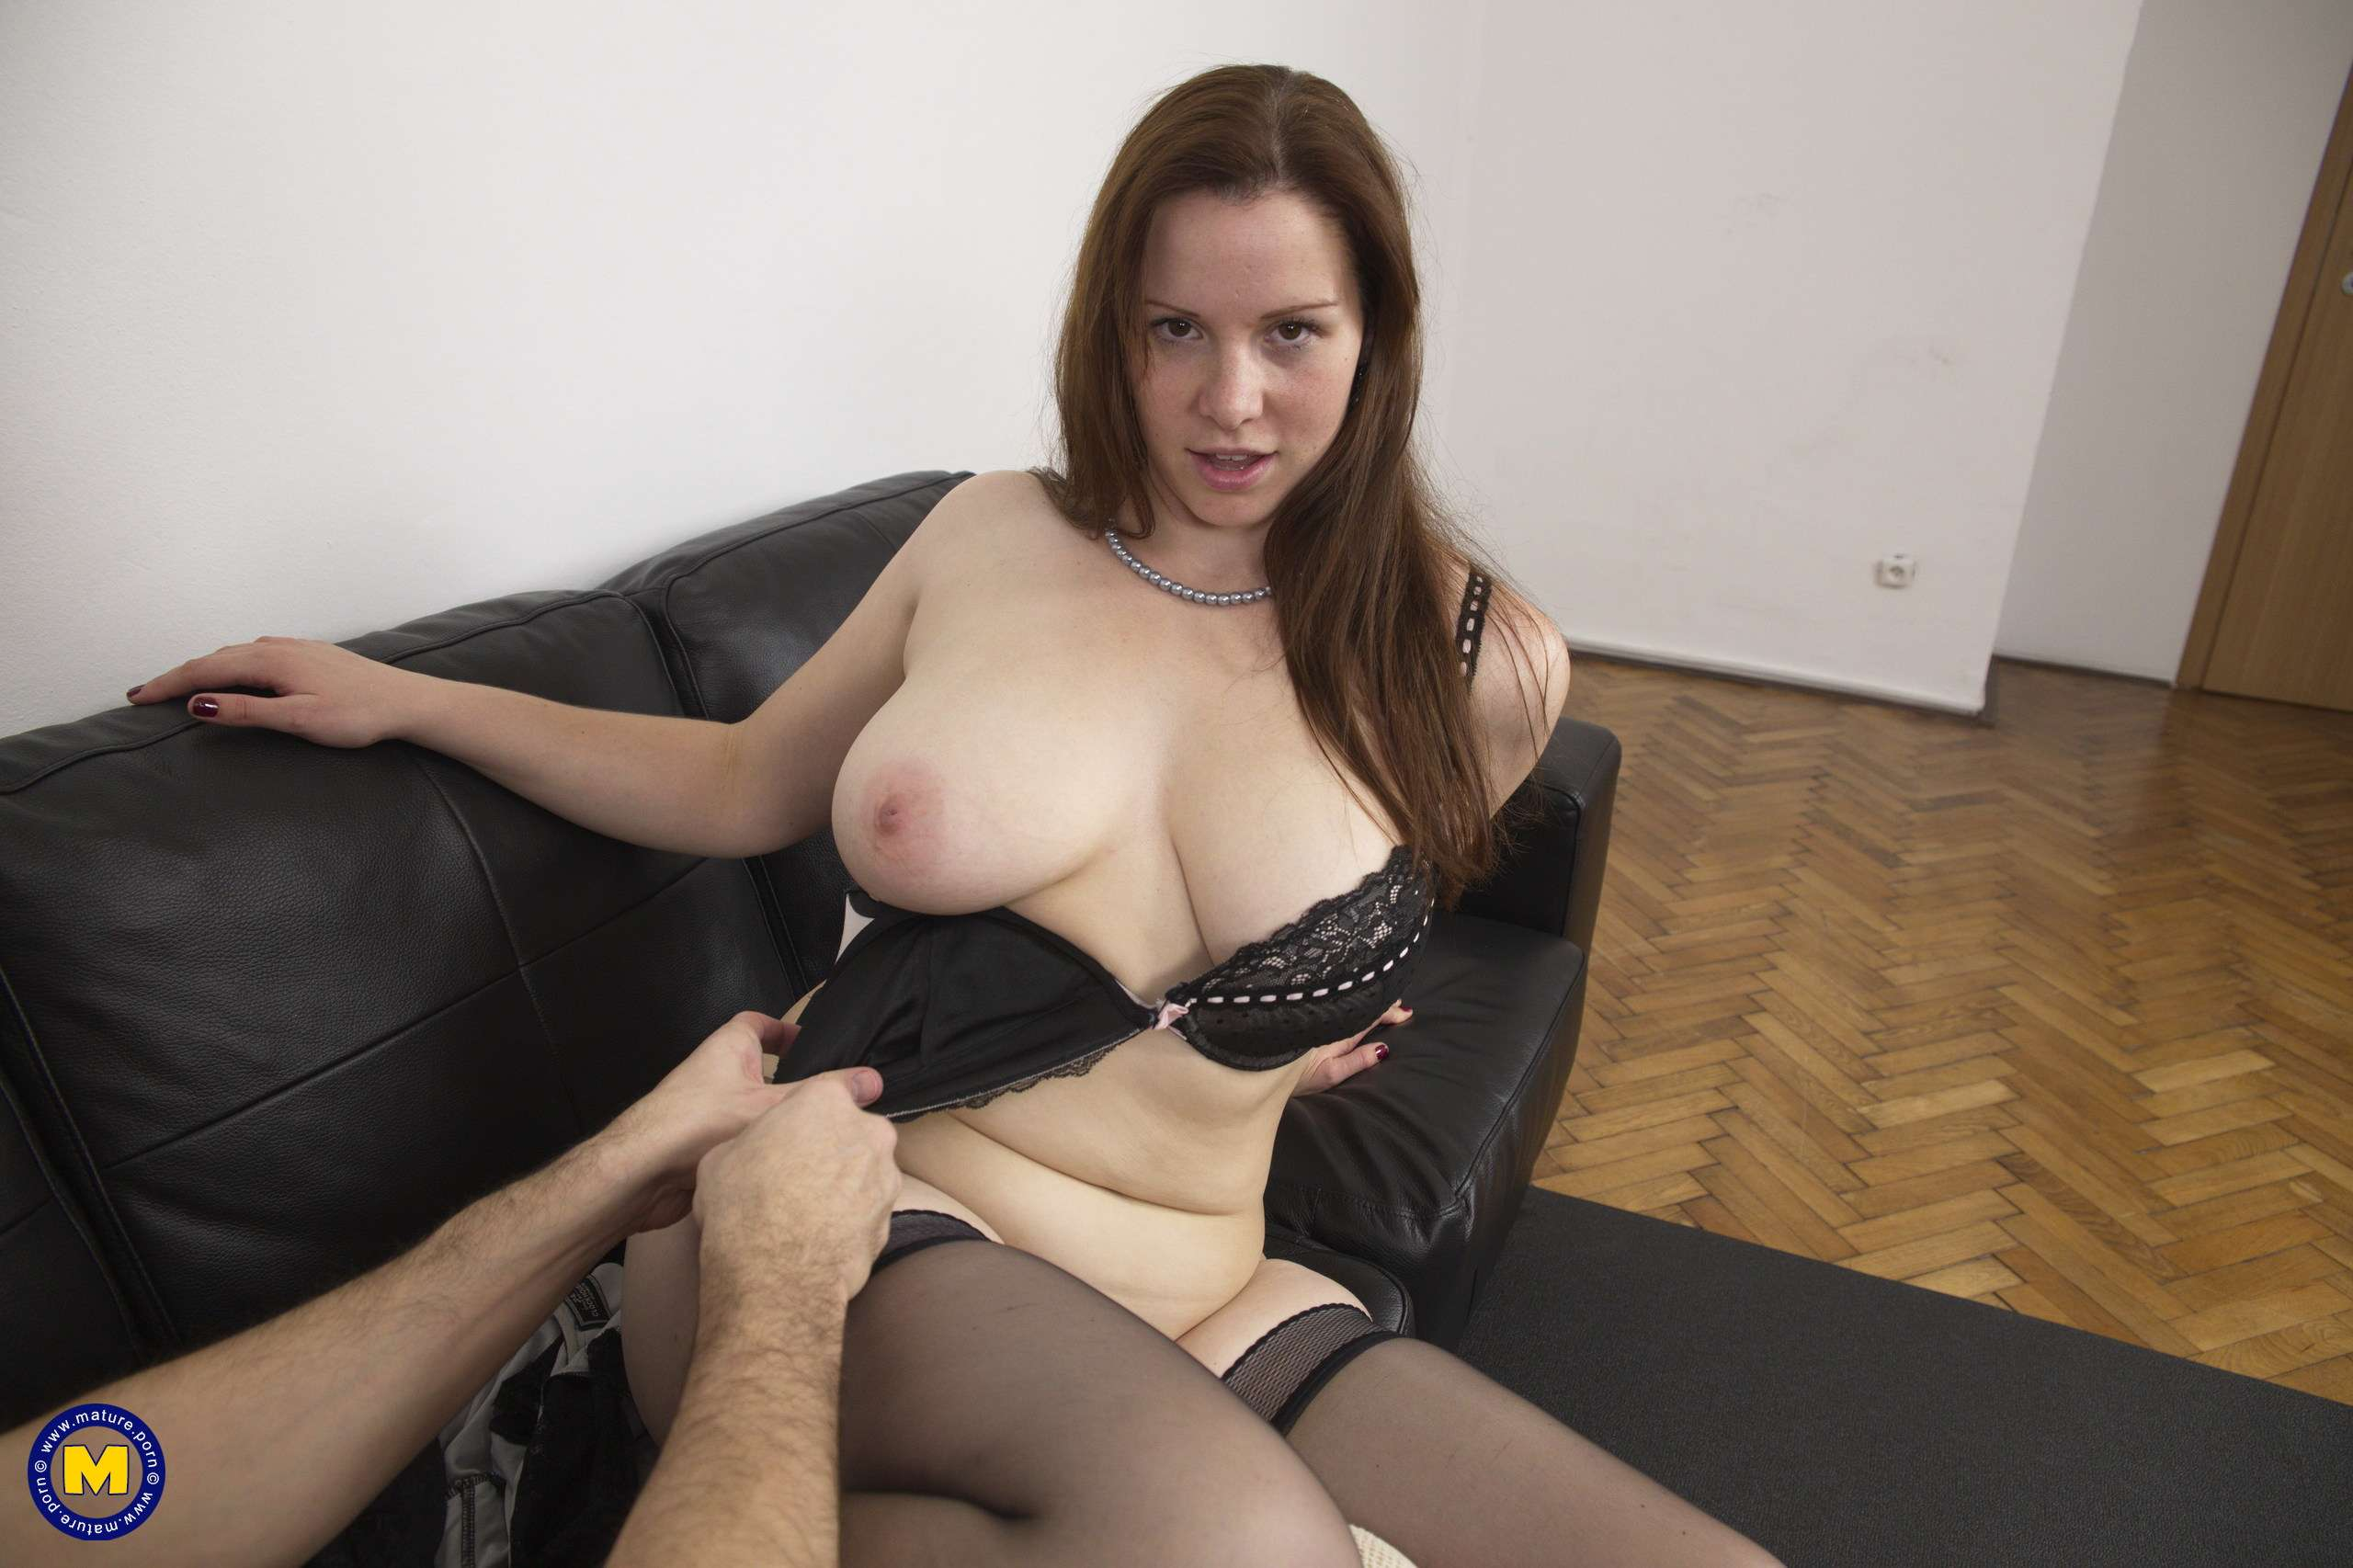 Naughty curvy mom getting it good